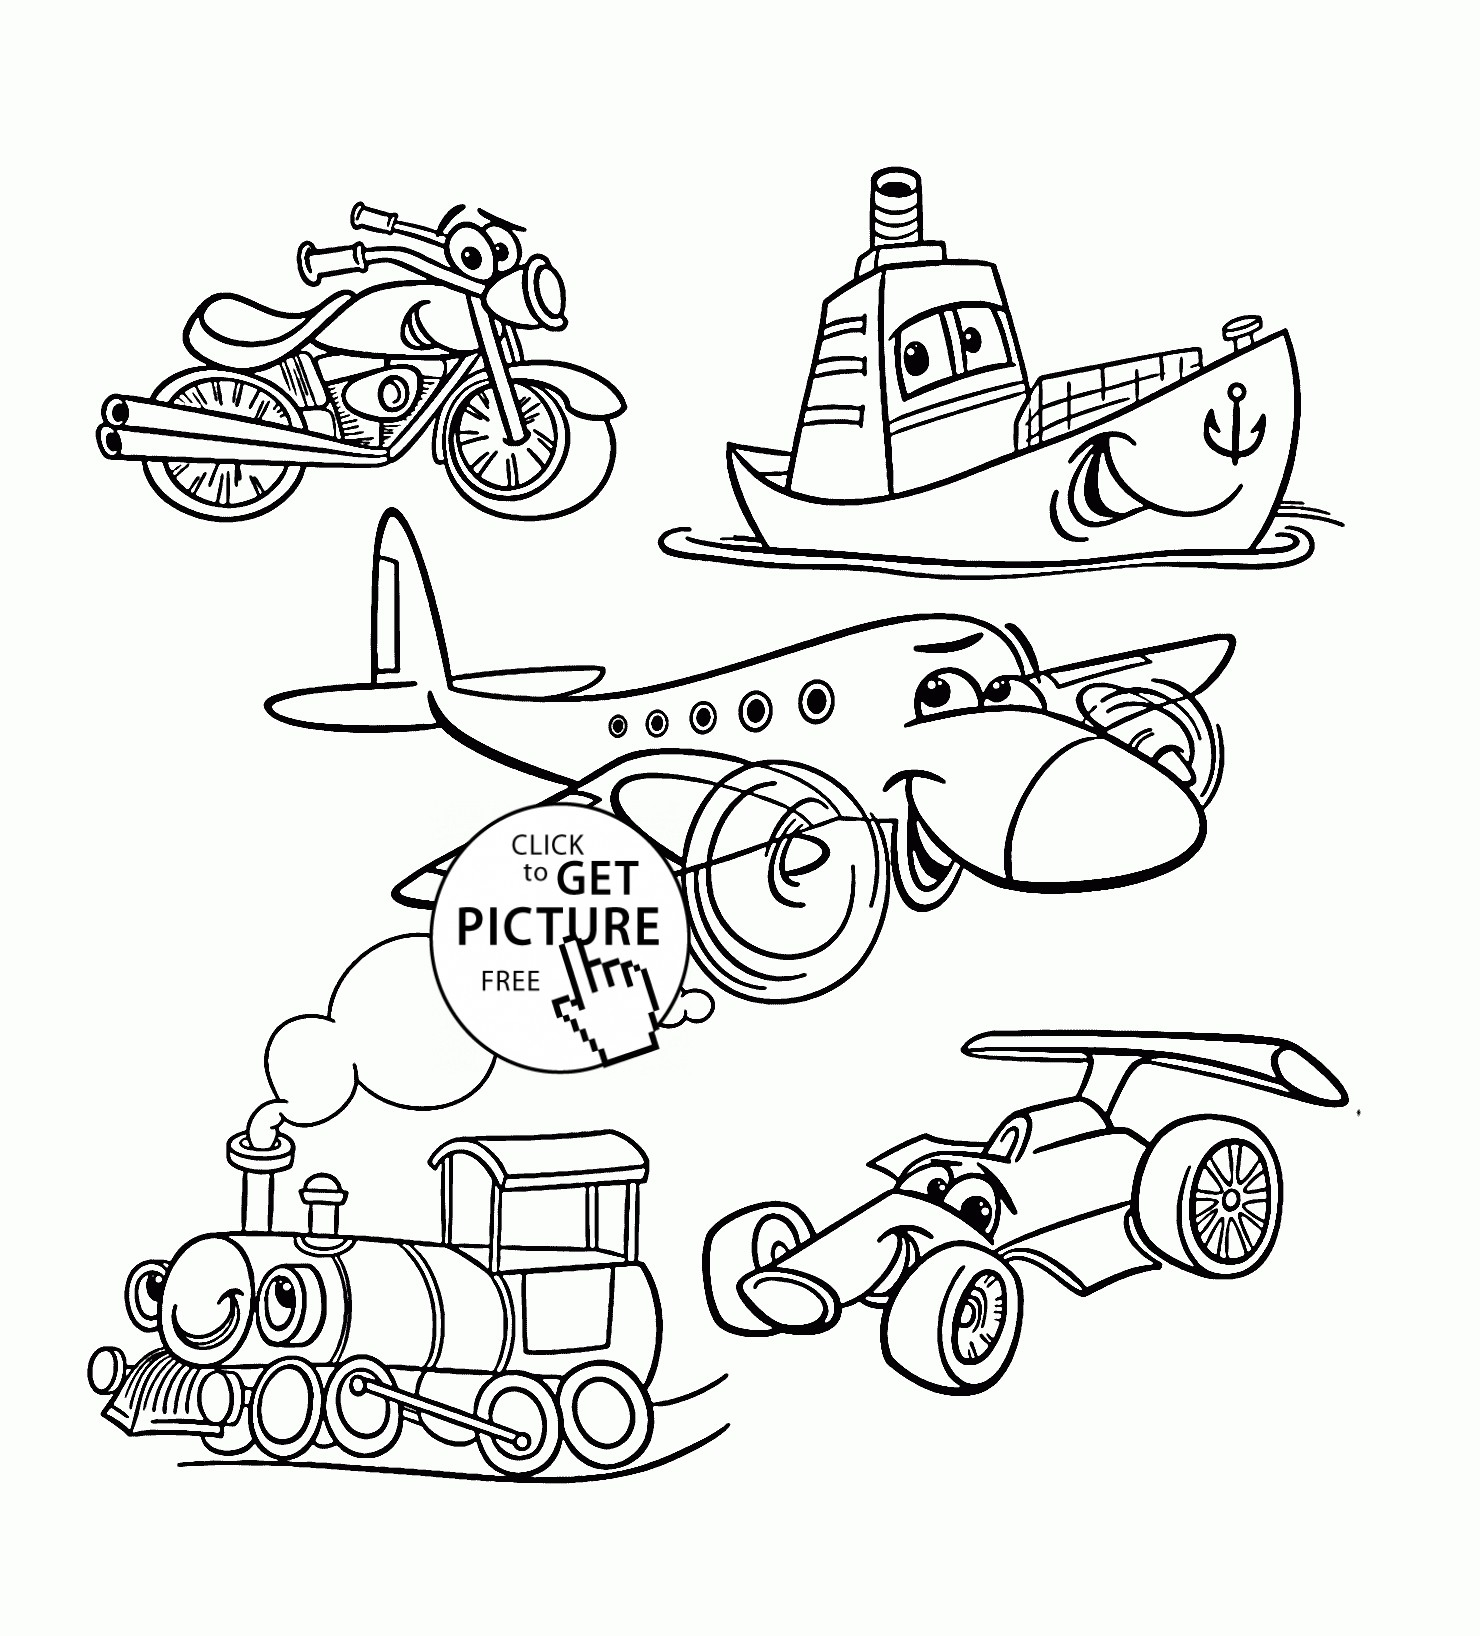 1480x1636 Toy Car Coloring Pages New Dodge Car Colouring Pages Free To Print